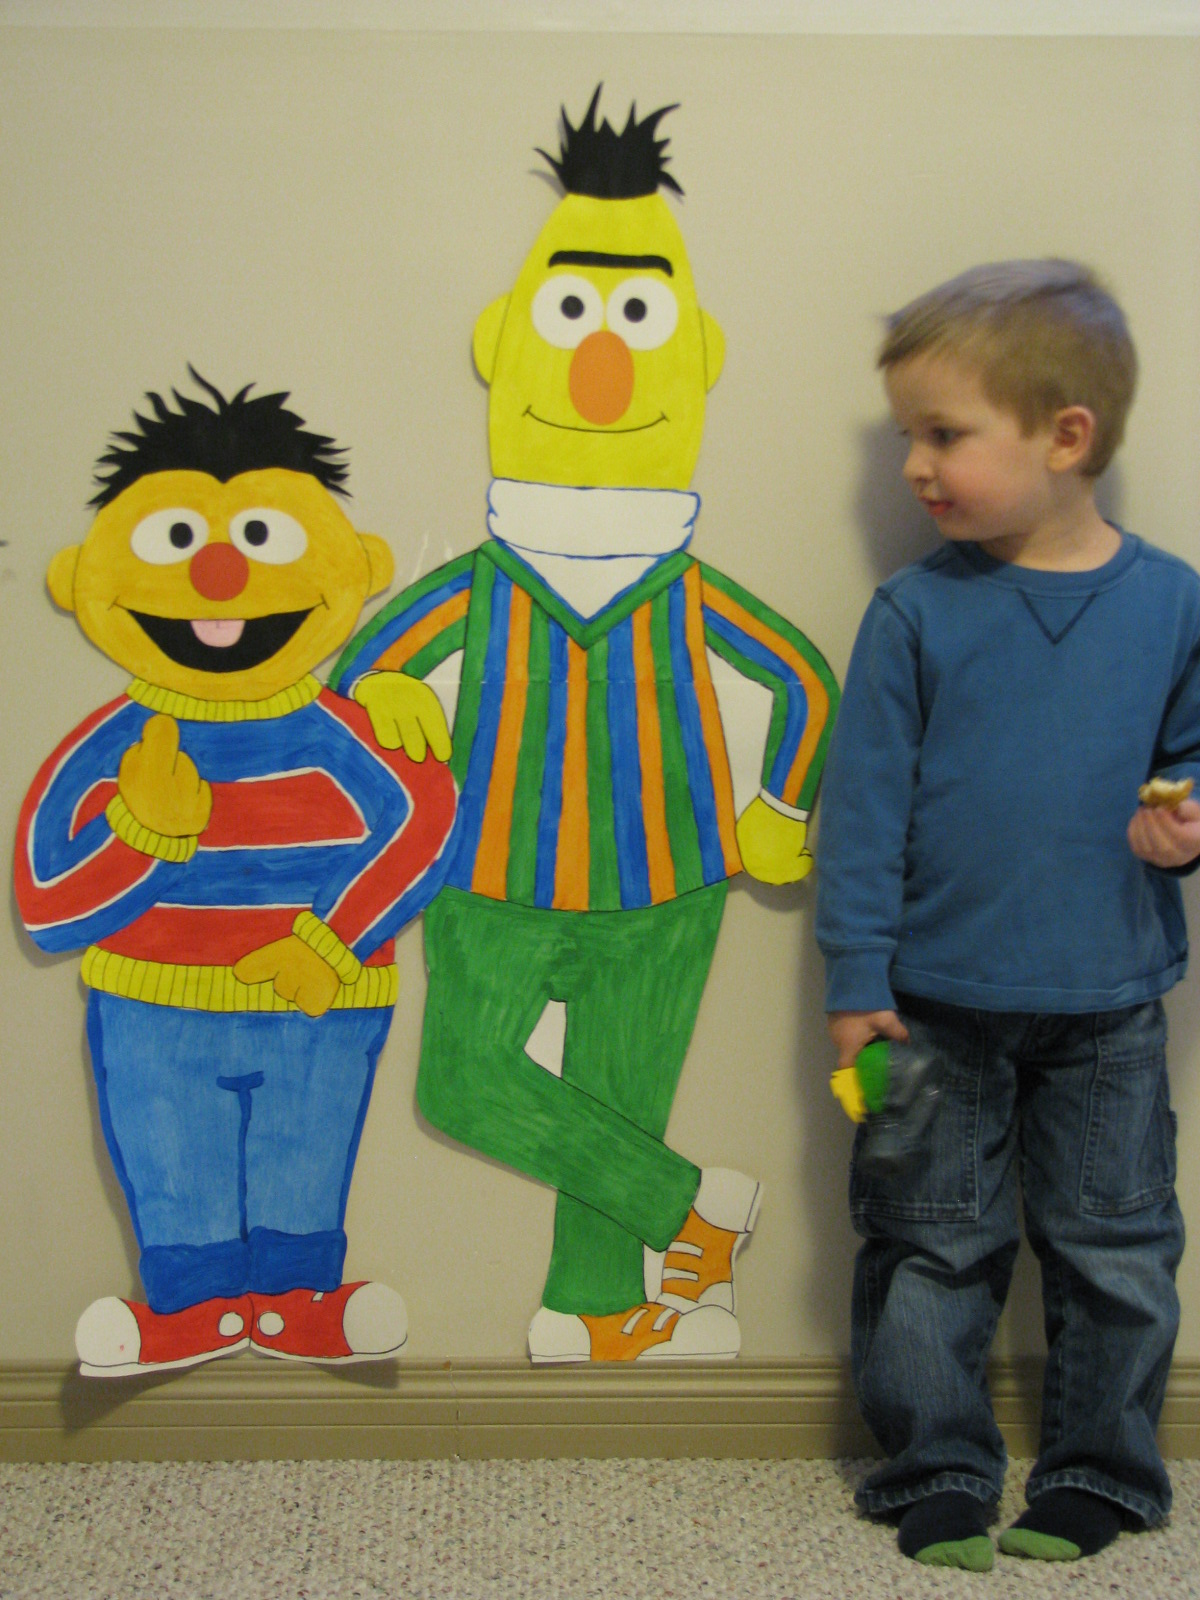 Making Merry Memories: Sesame Street Birthday - Decorations and